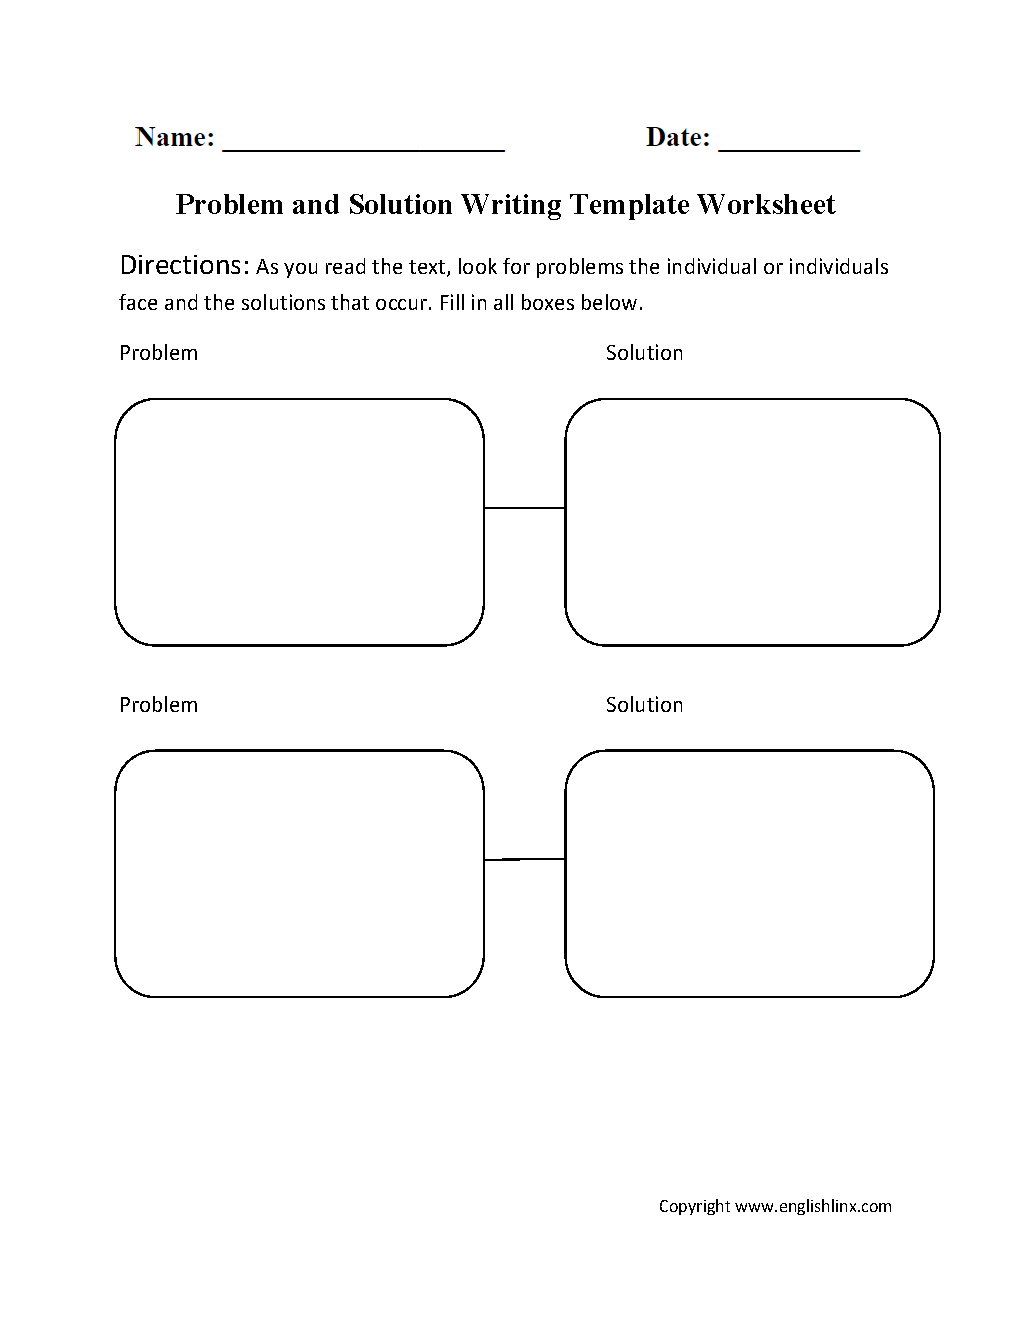 writing worksheets writing template worksheets problem and solution writing template worksheets